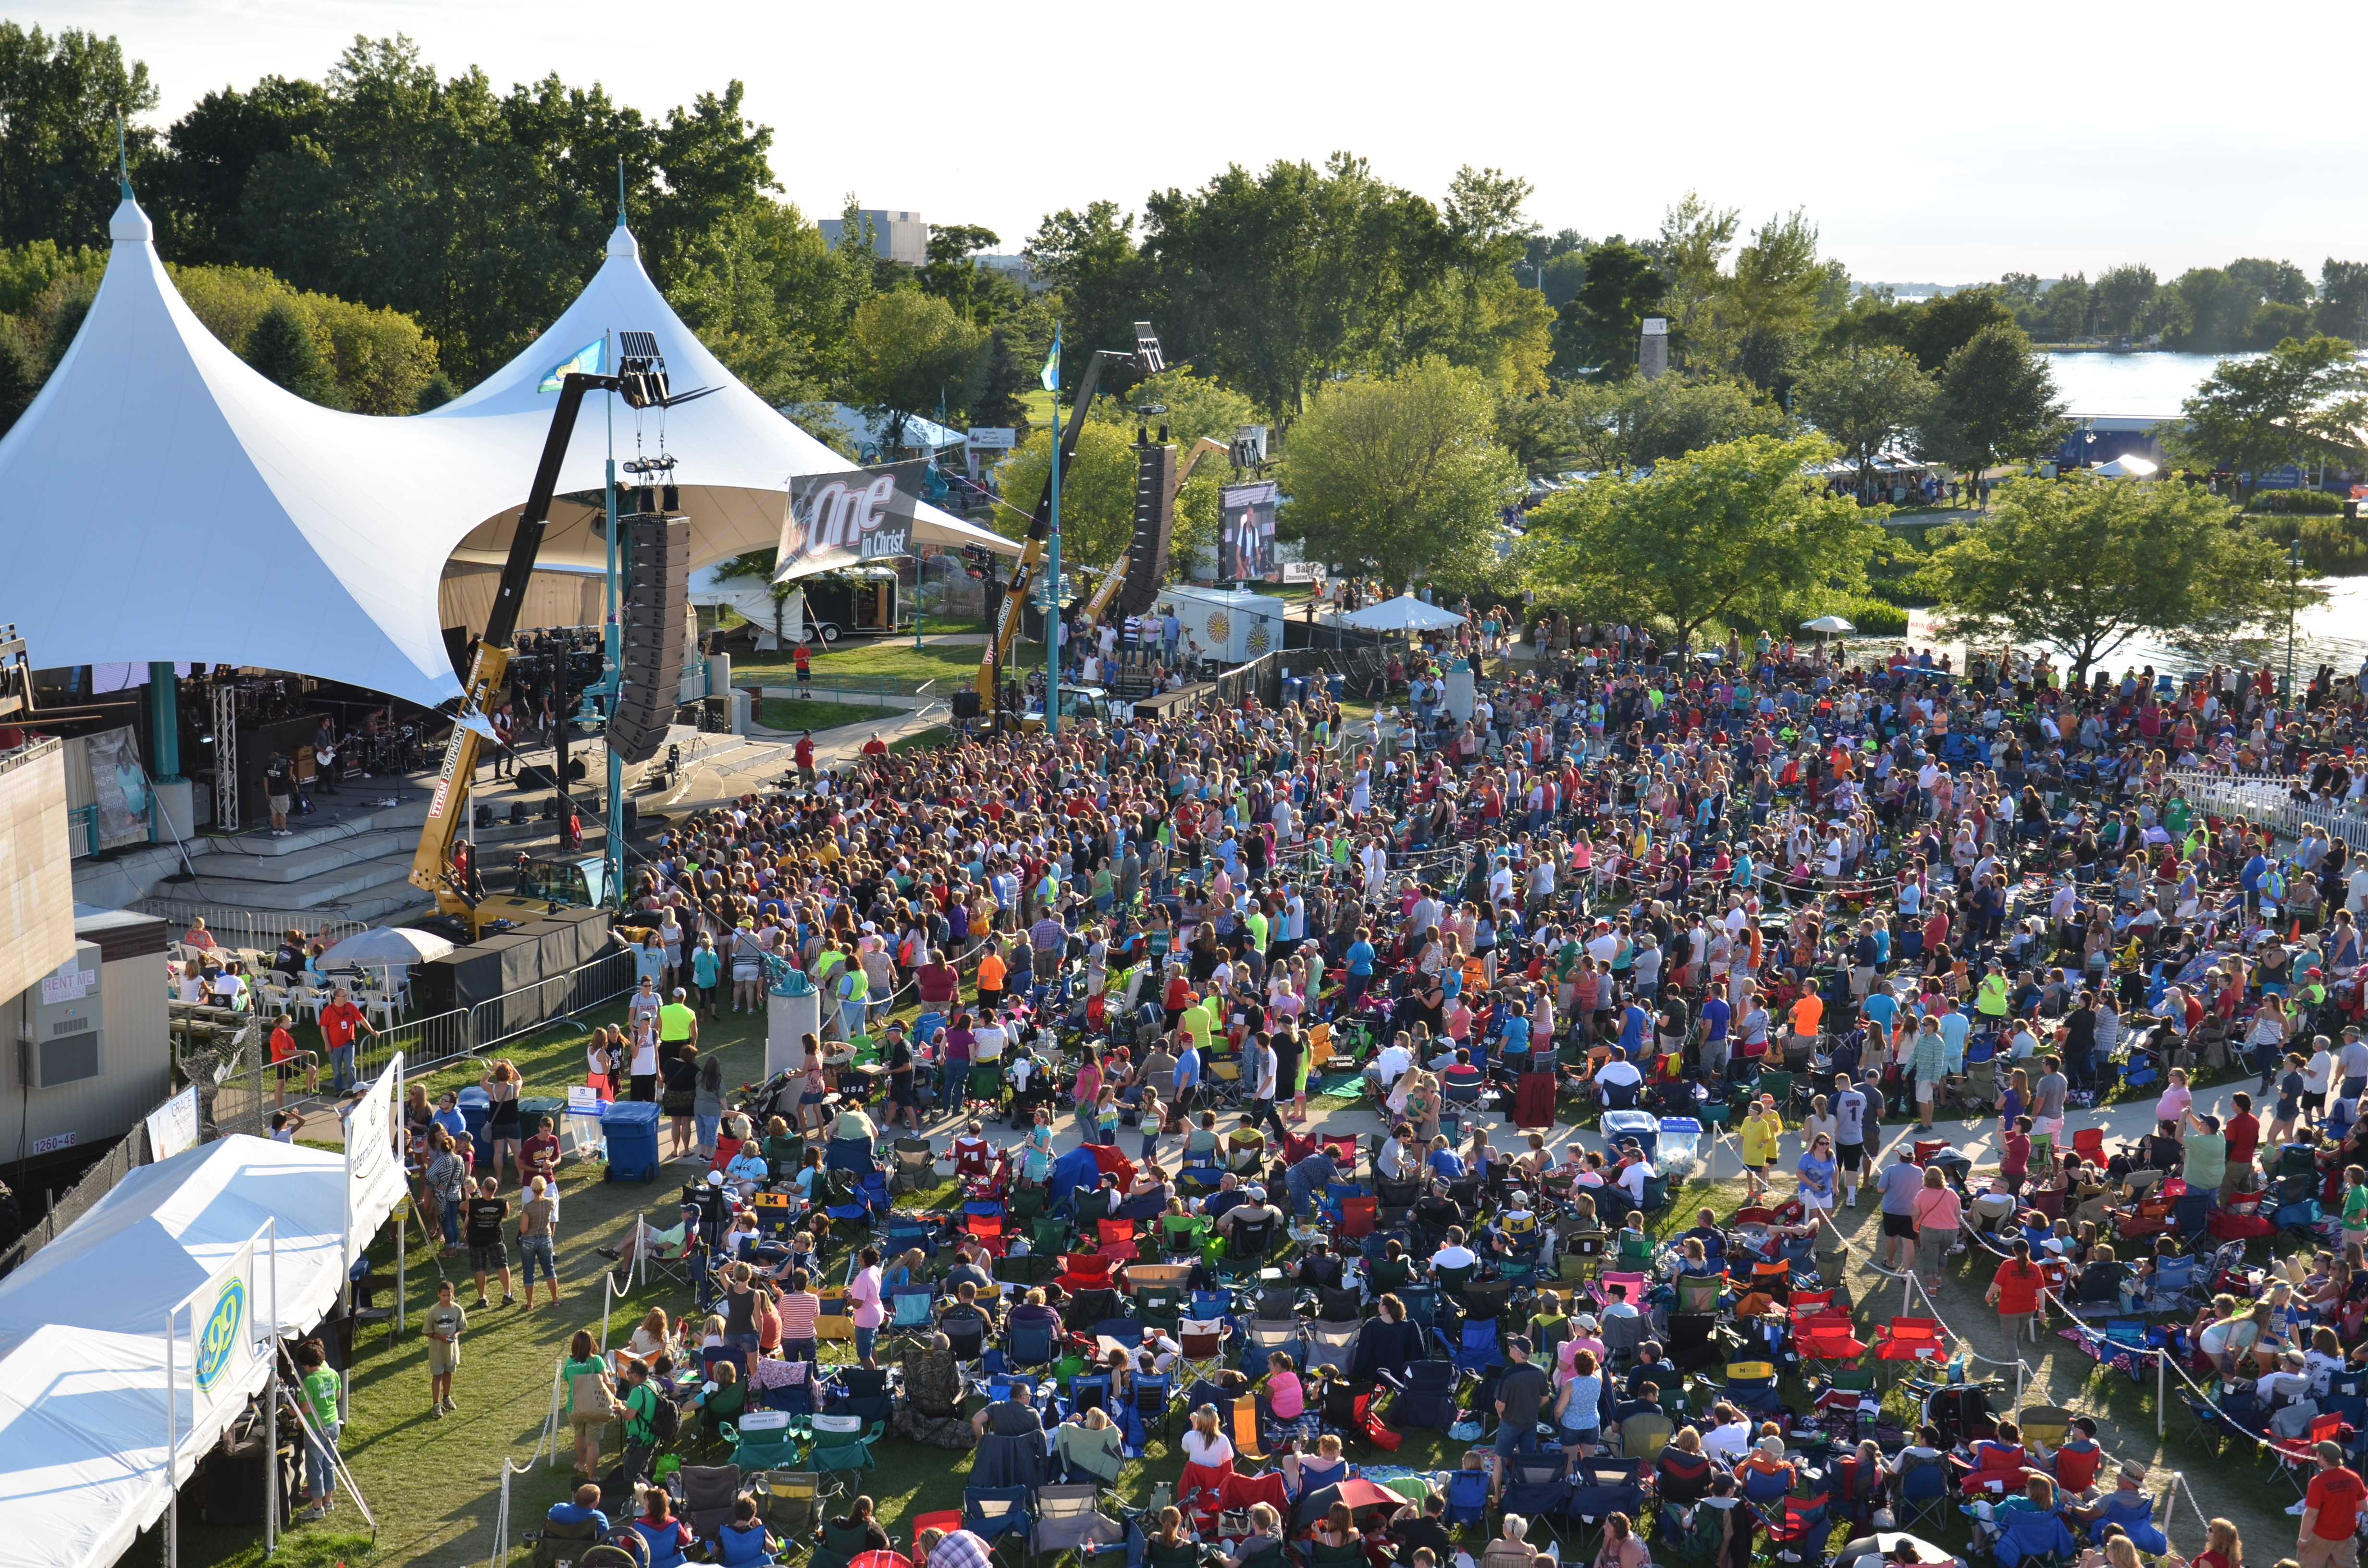 Birds eye view of crowd during a concert at Heritage Landing